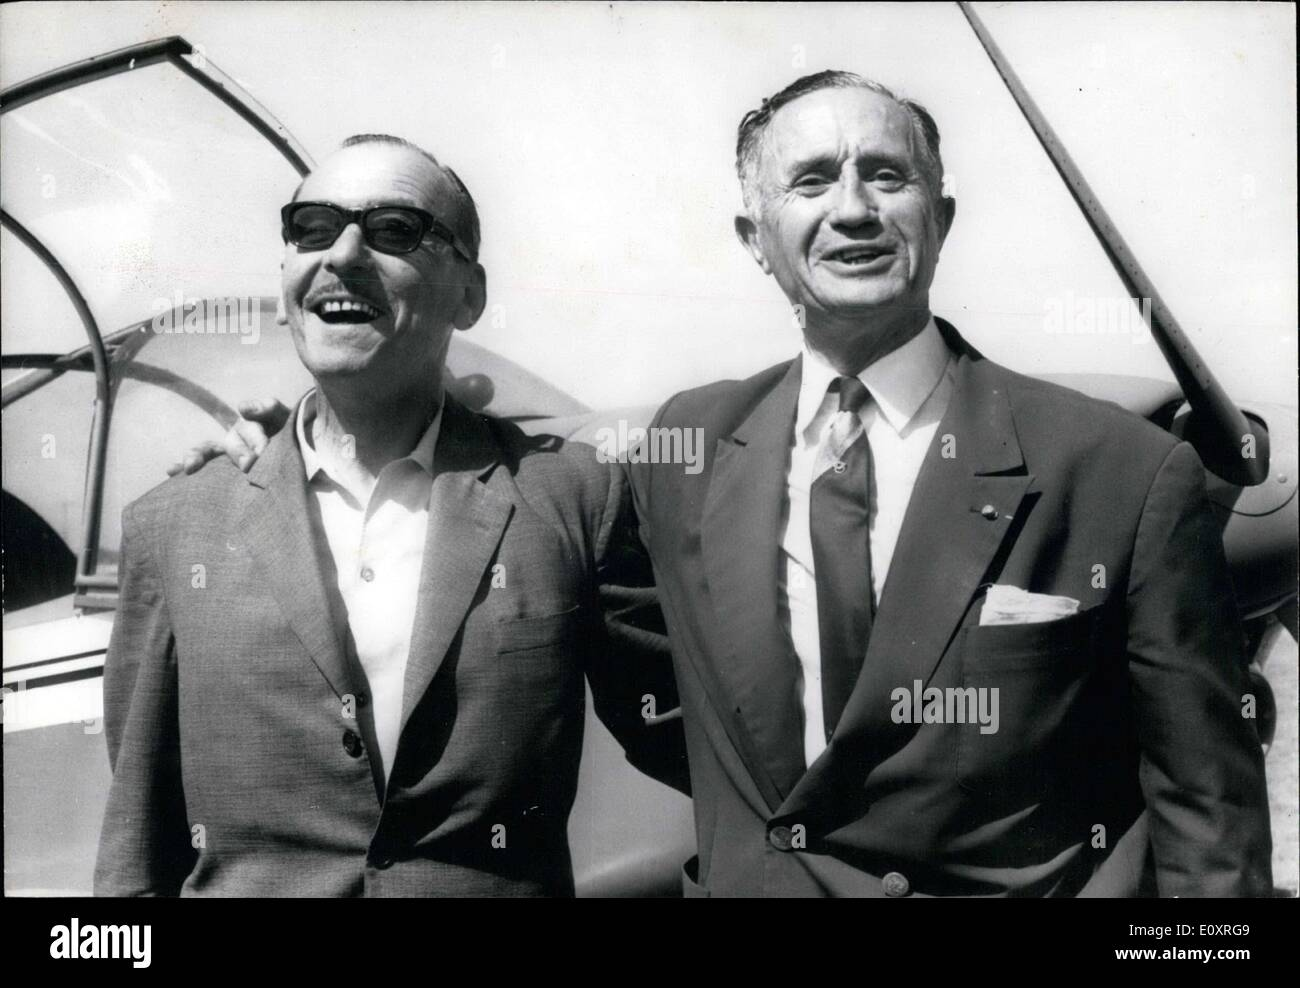 Aug. 09, 1967 - Pol Dessalas and Jacques Terrasson - Stock Image